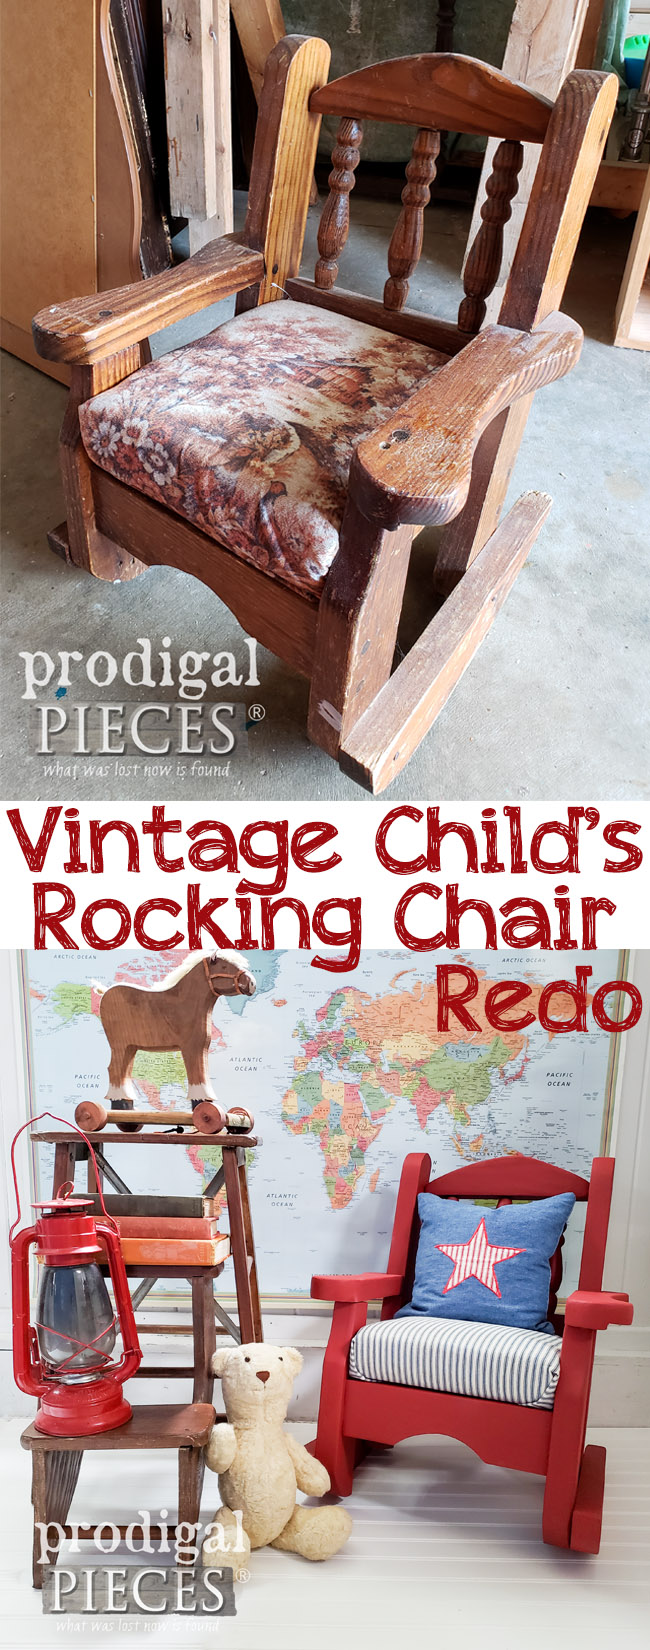 Oh my...I think every 80's child had that upholstery in their home! This vintage child's rocking chair needed an update and some TLC. Get the DIY details by Larissa at Prodigal Pieces at prodigalpieces.com | #prodigalpieces #furniture #homedecor #handmade #kids